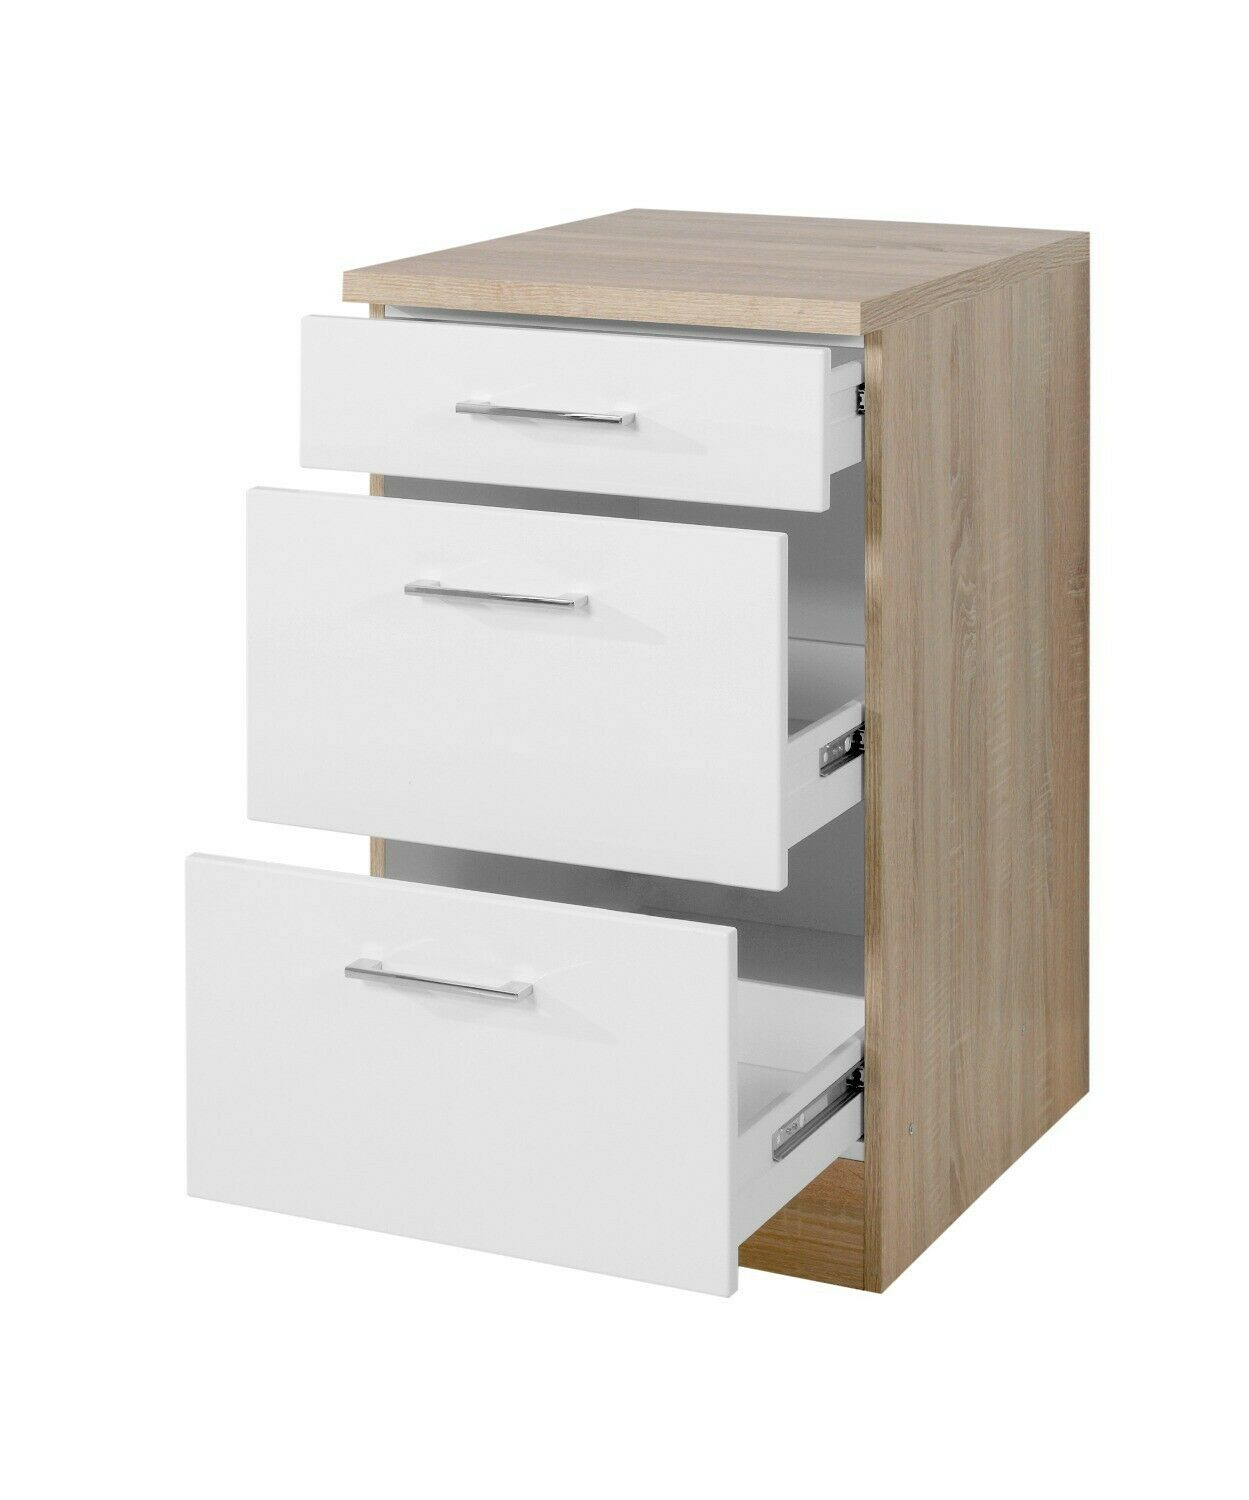 k chen unterschrank lissabon k chenschrank mit schubladen 50cm weiss sonoma eur 139 99. Black Bedroom Furniture Sets. Home Design Ideas